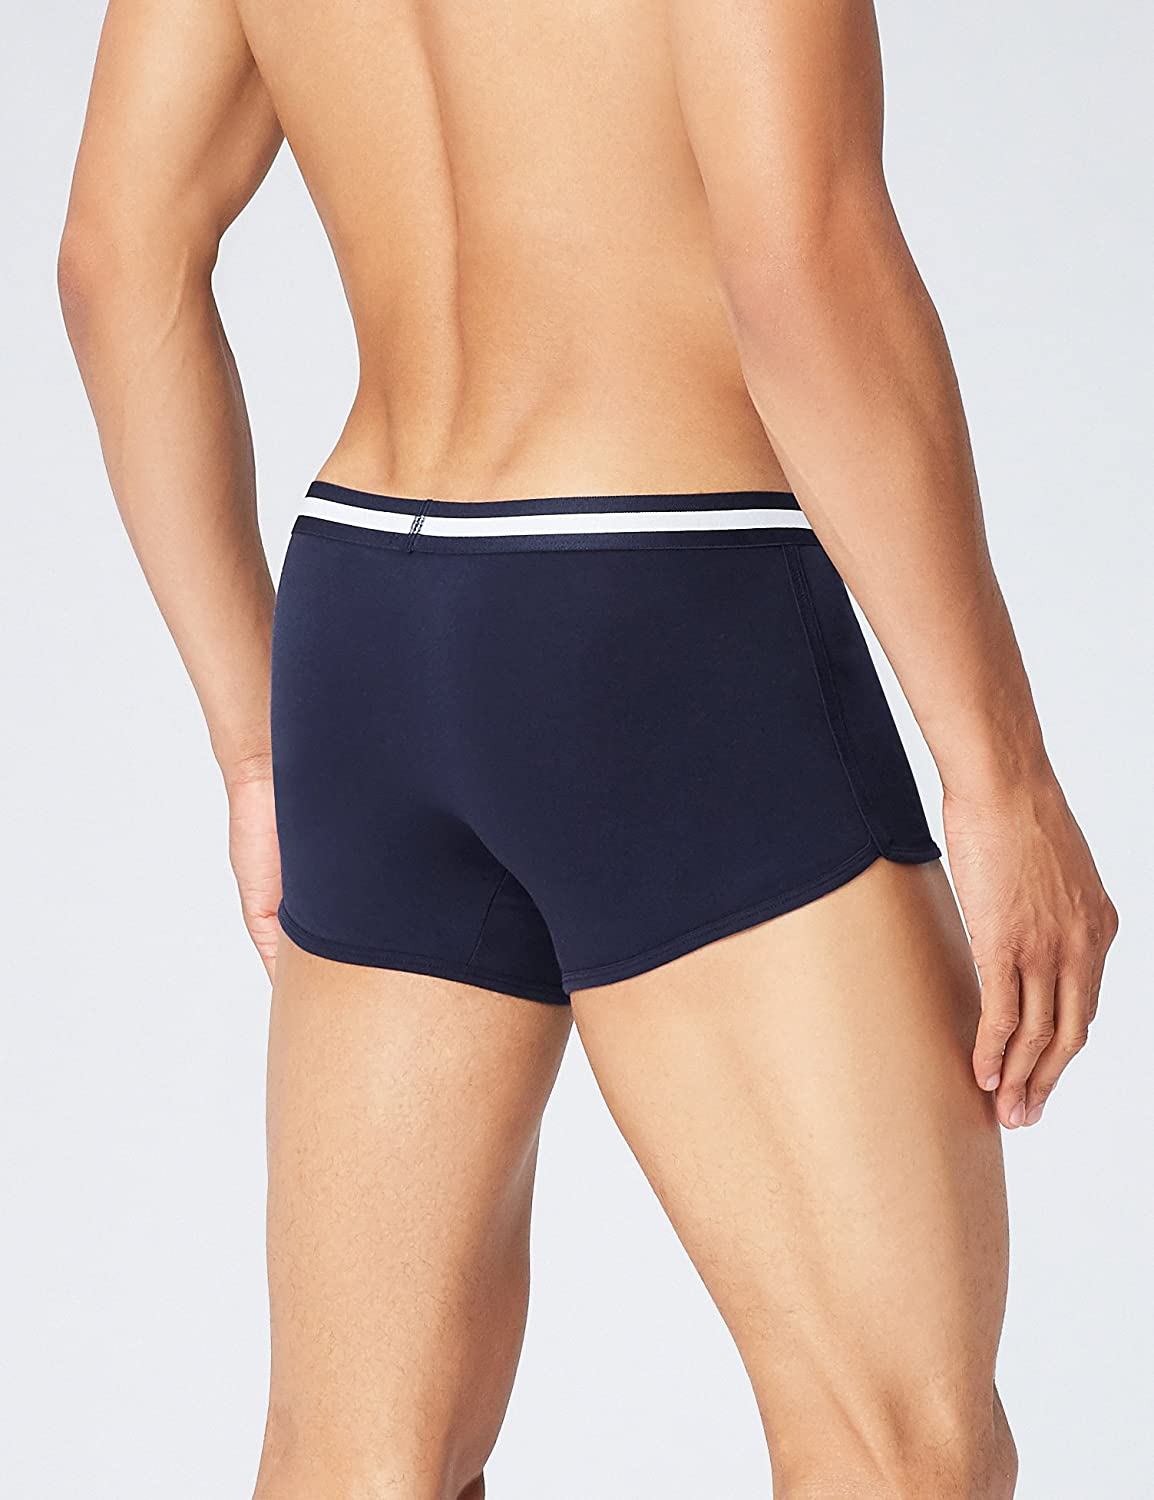 find Pack of 5 Brand Mens Cotton Trunk